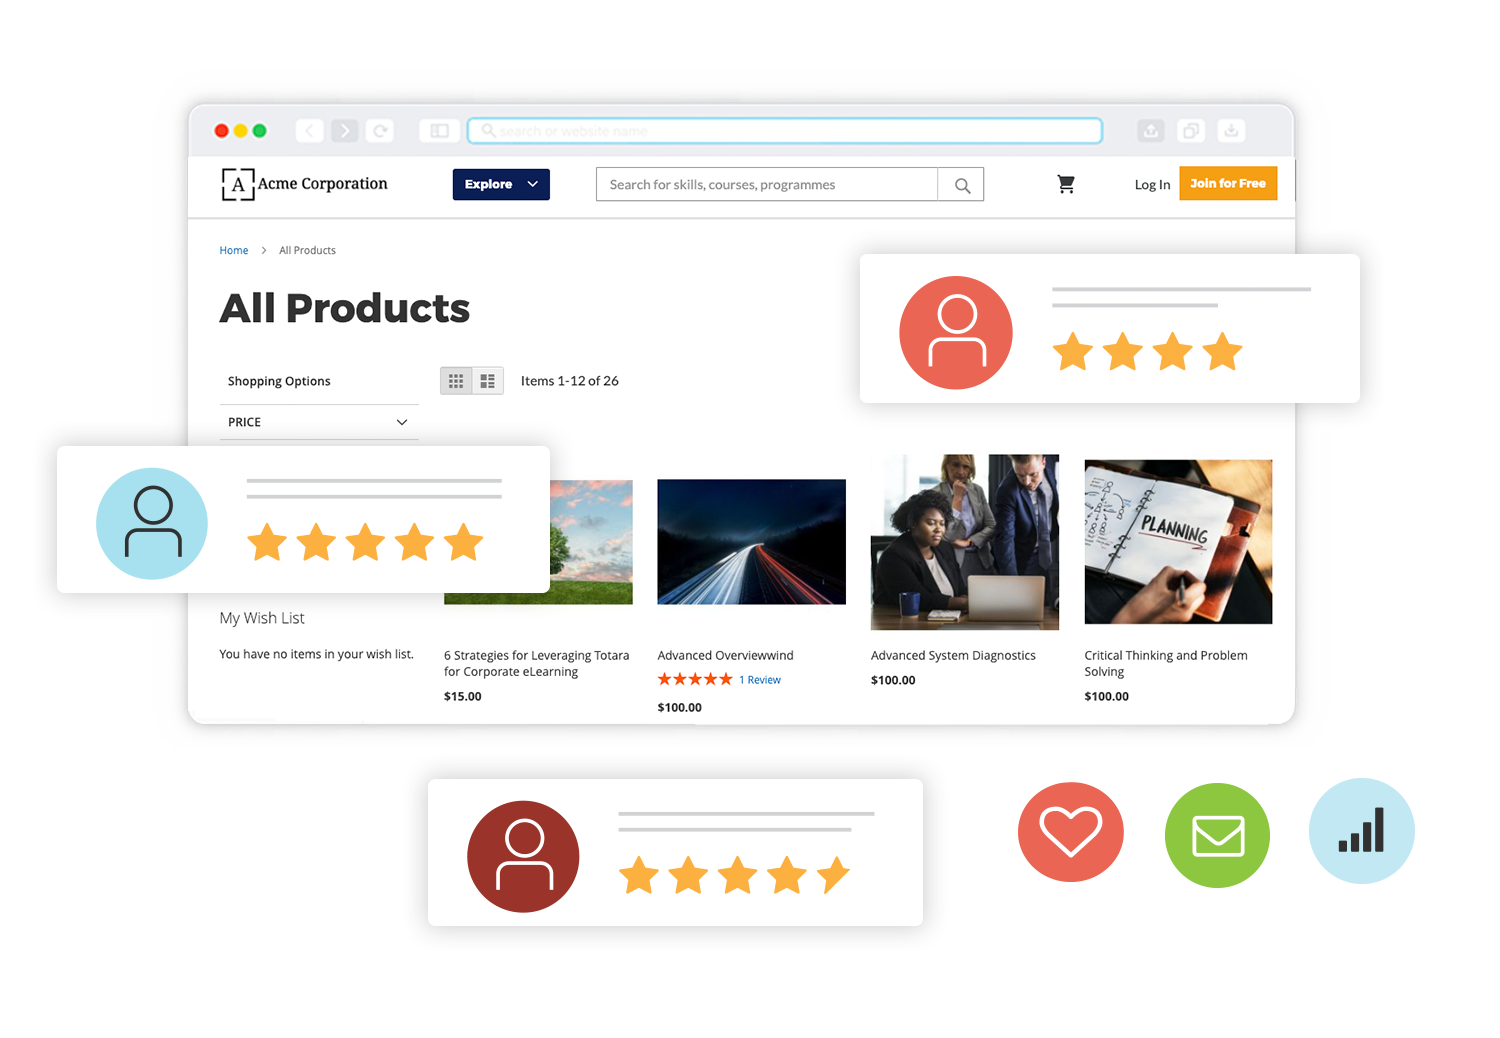 image sell online courses with lambda store